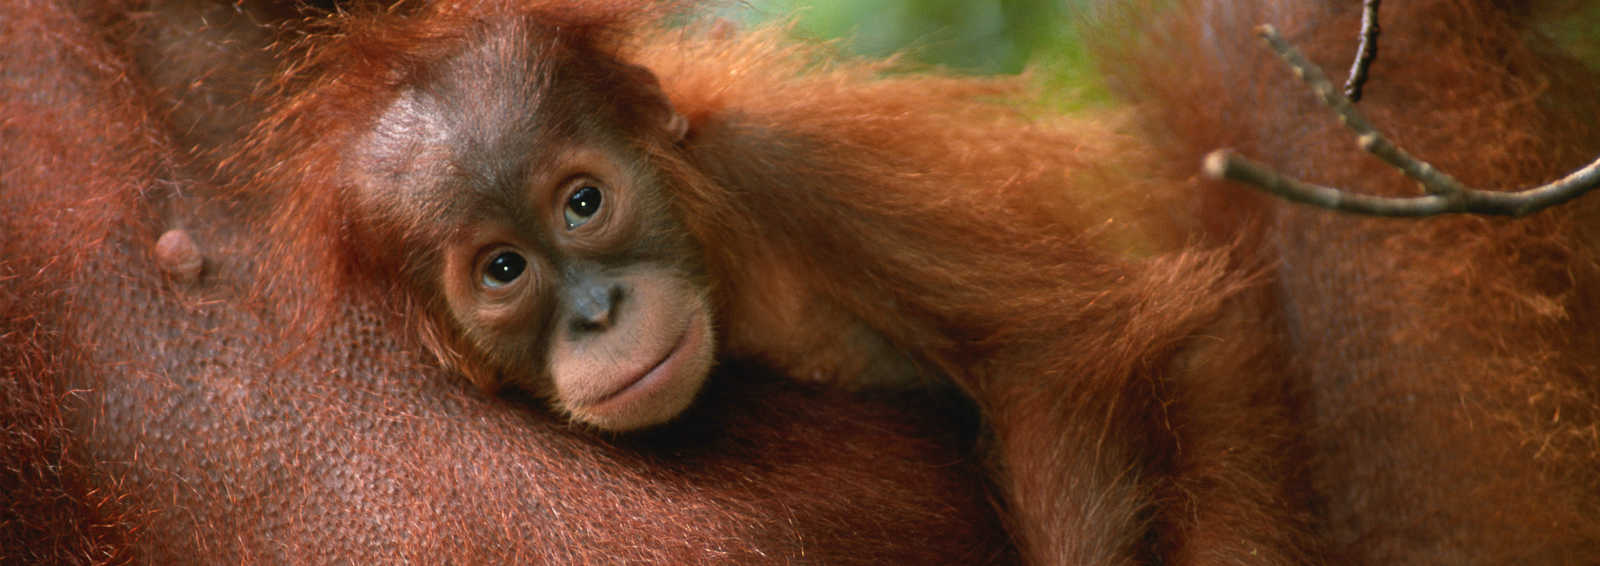 Baby orang utan (Pongo pygmaeus) resting on it's mother's chest, close up, Gunung Leuser N.P, Indonesia